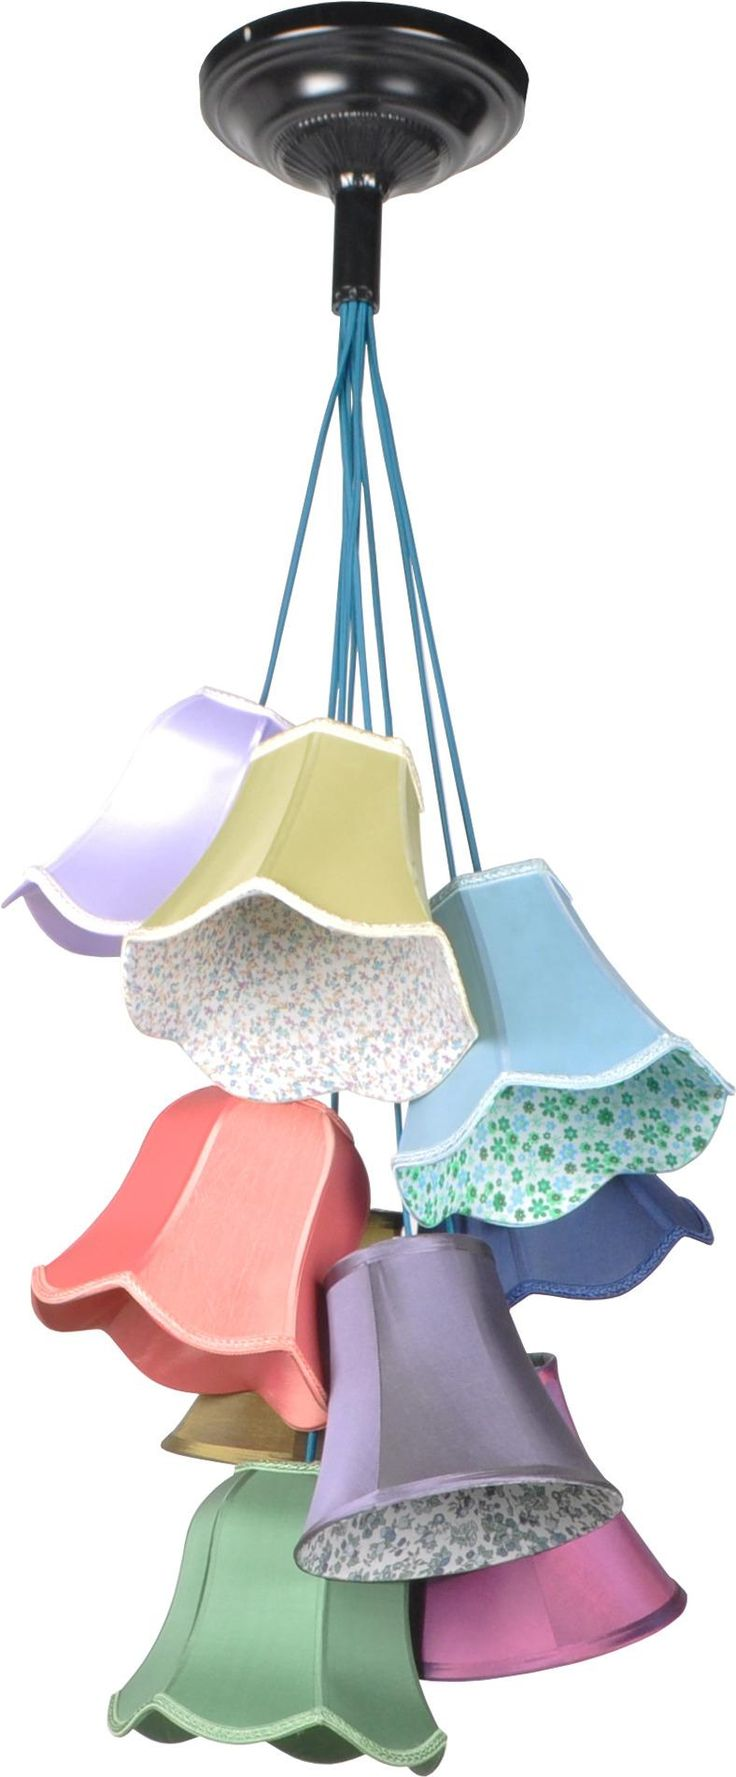 Hanglamp Granny - Textiel - Mix Color - Zuiver